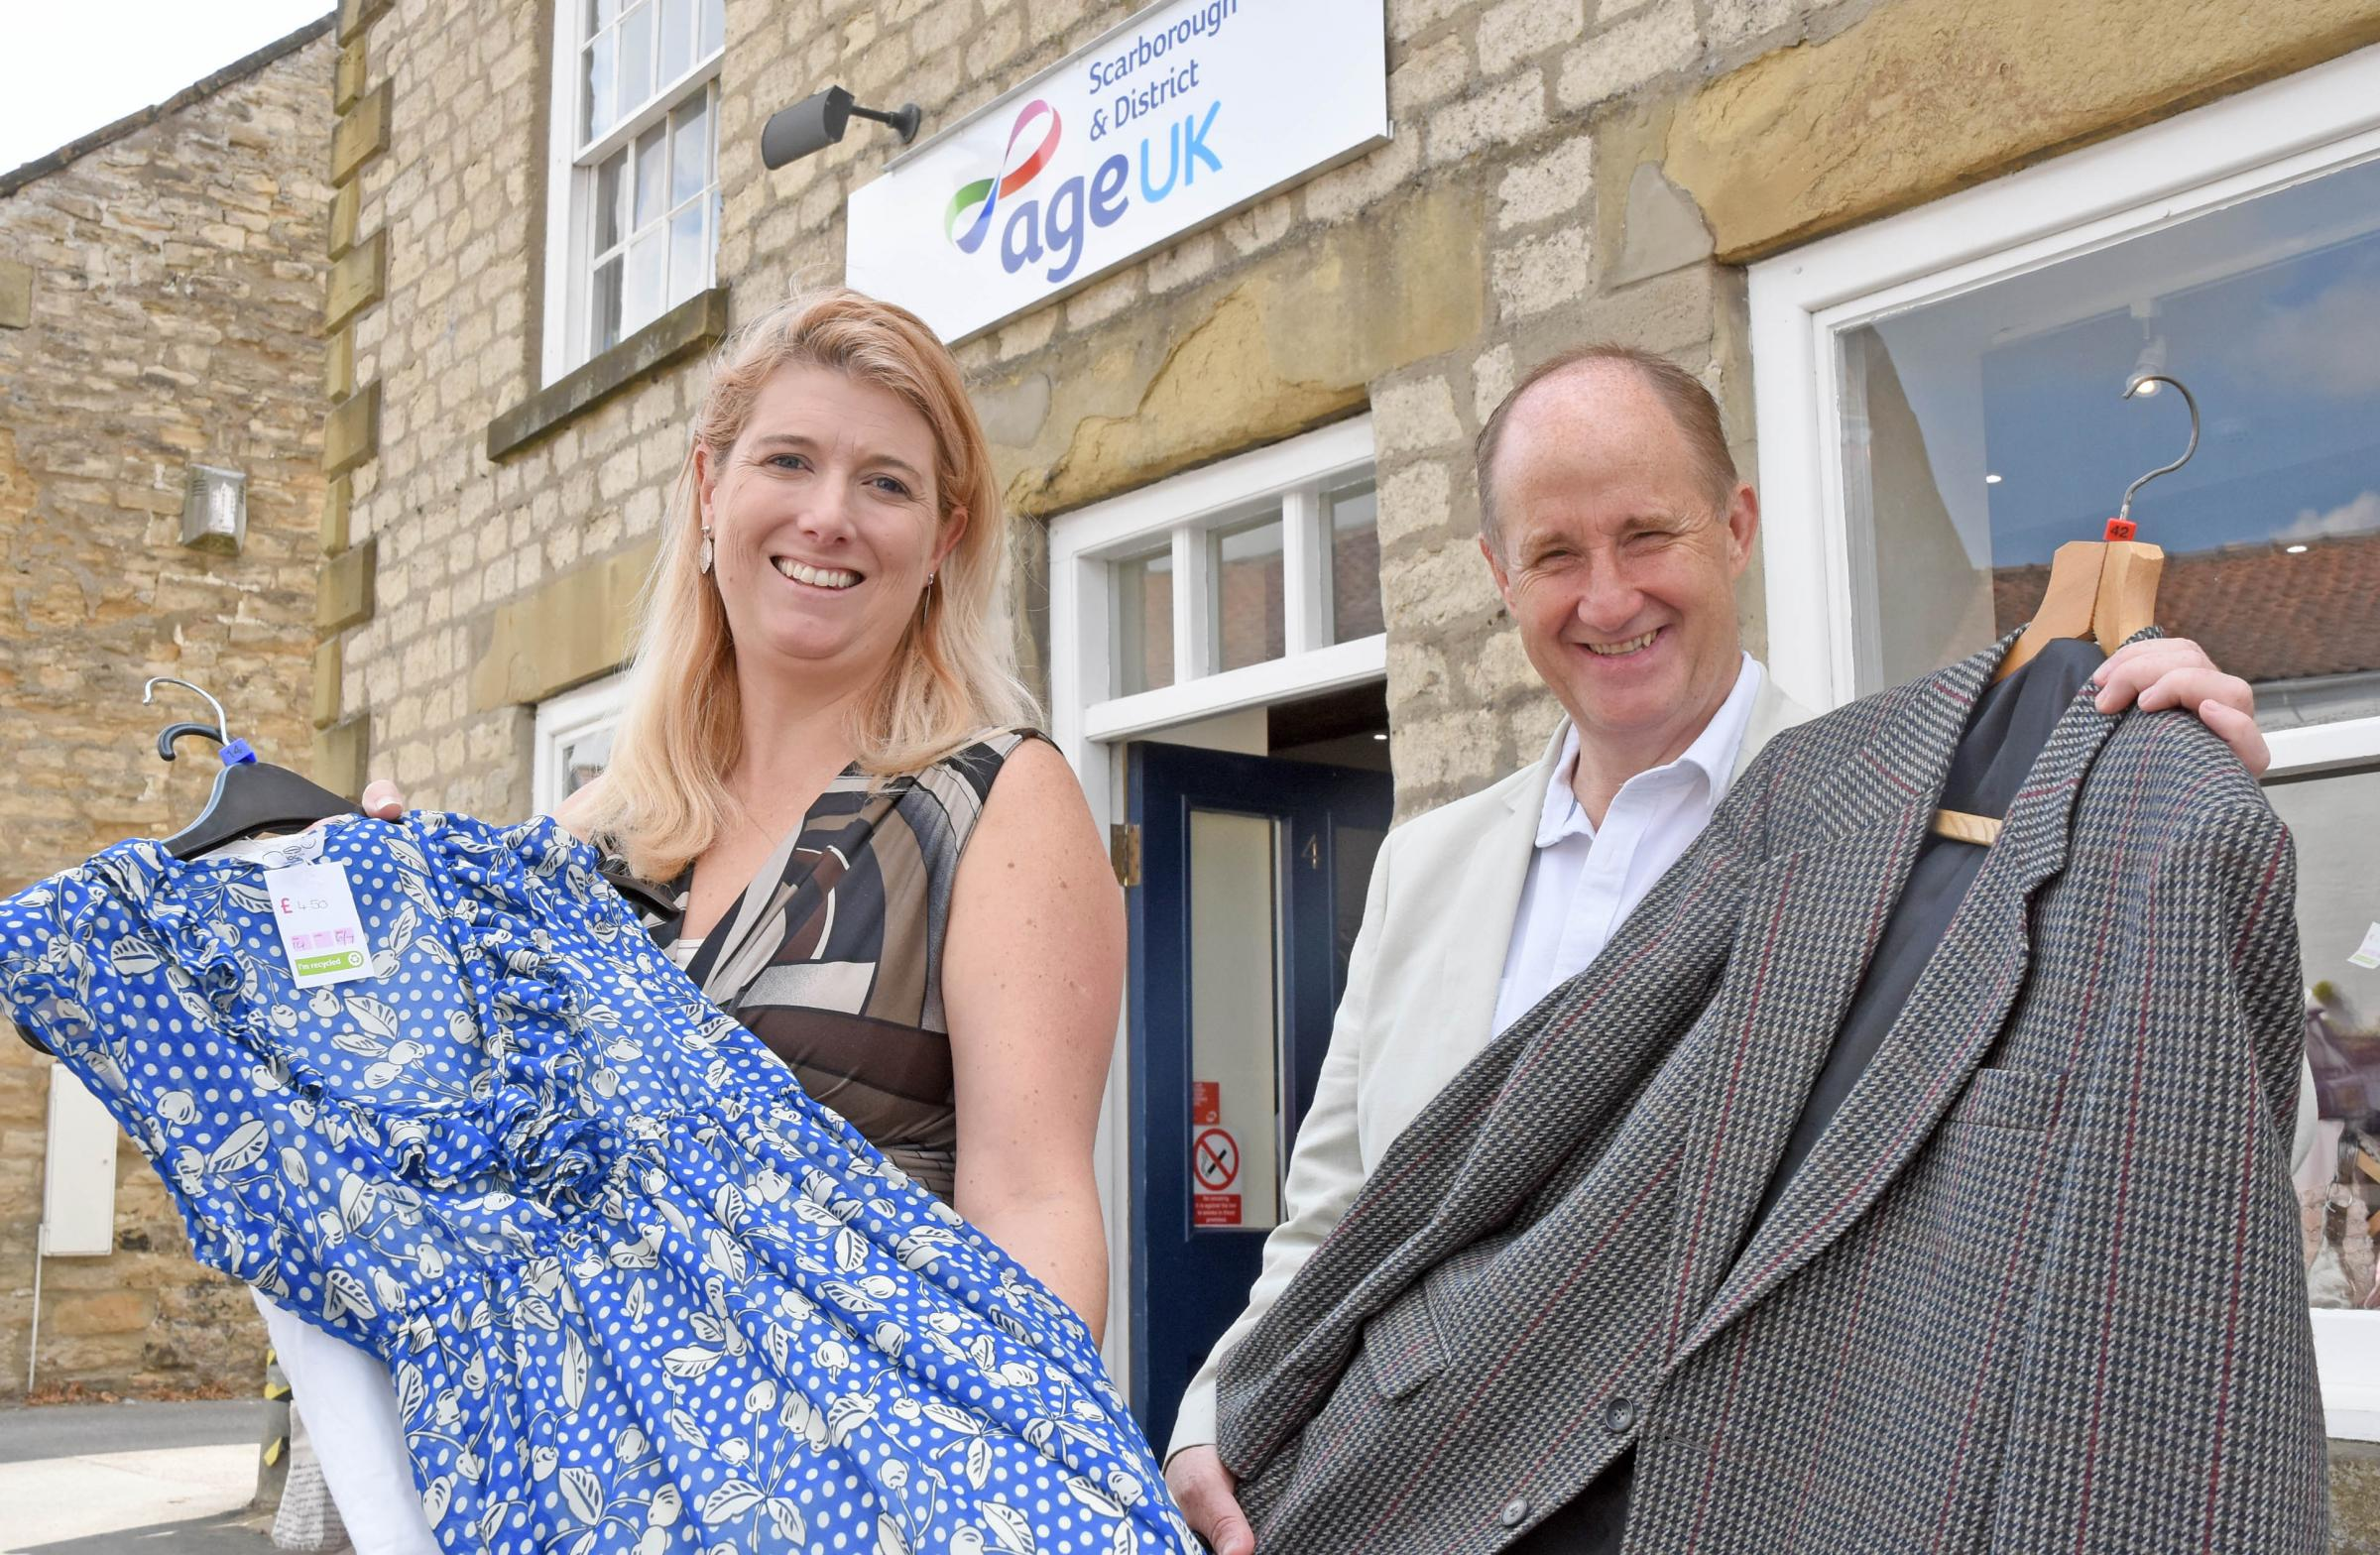 Julie-Anne Macey, chief executive of Age UK Scarborough and District, at the opening of its new shop in Helmsley, helped Ryedale MP Kevin Hollinrake                                                        Picture: Nigel Holland